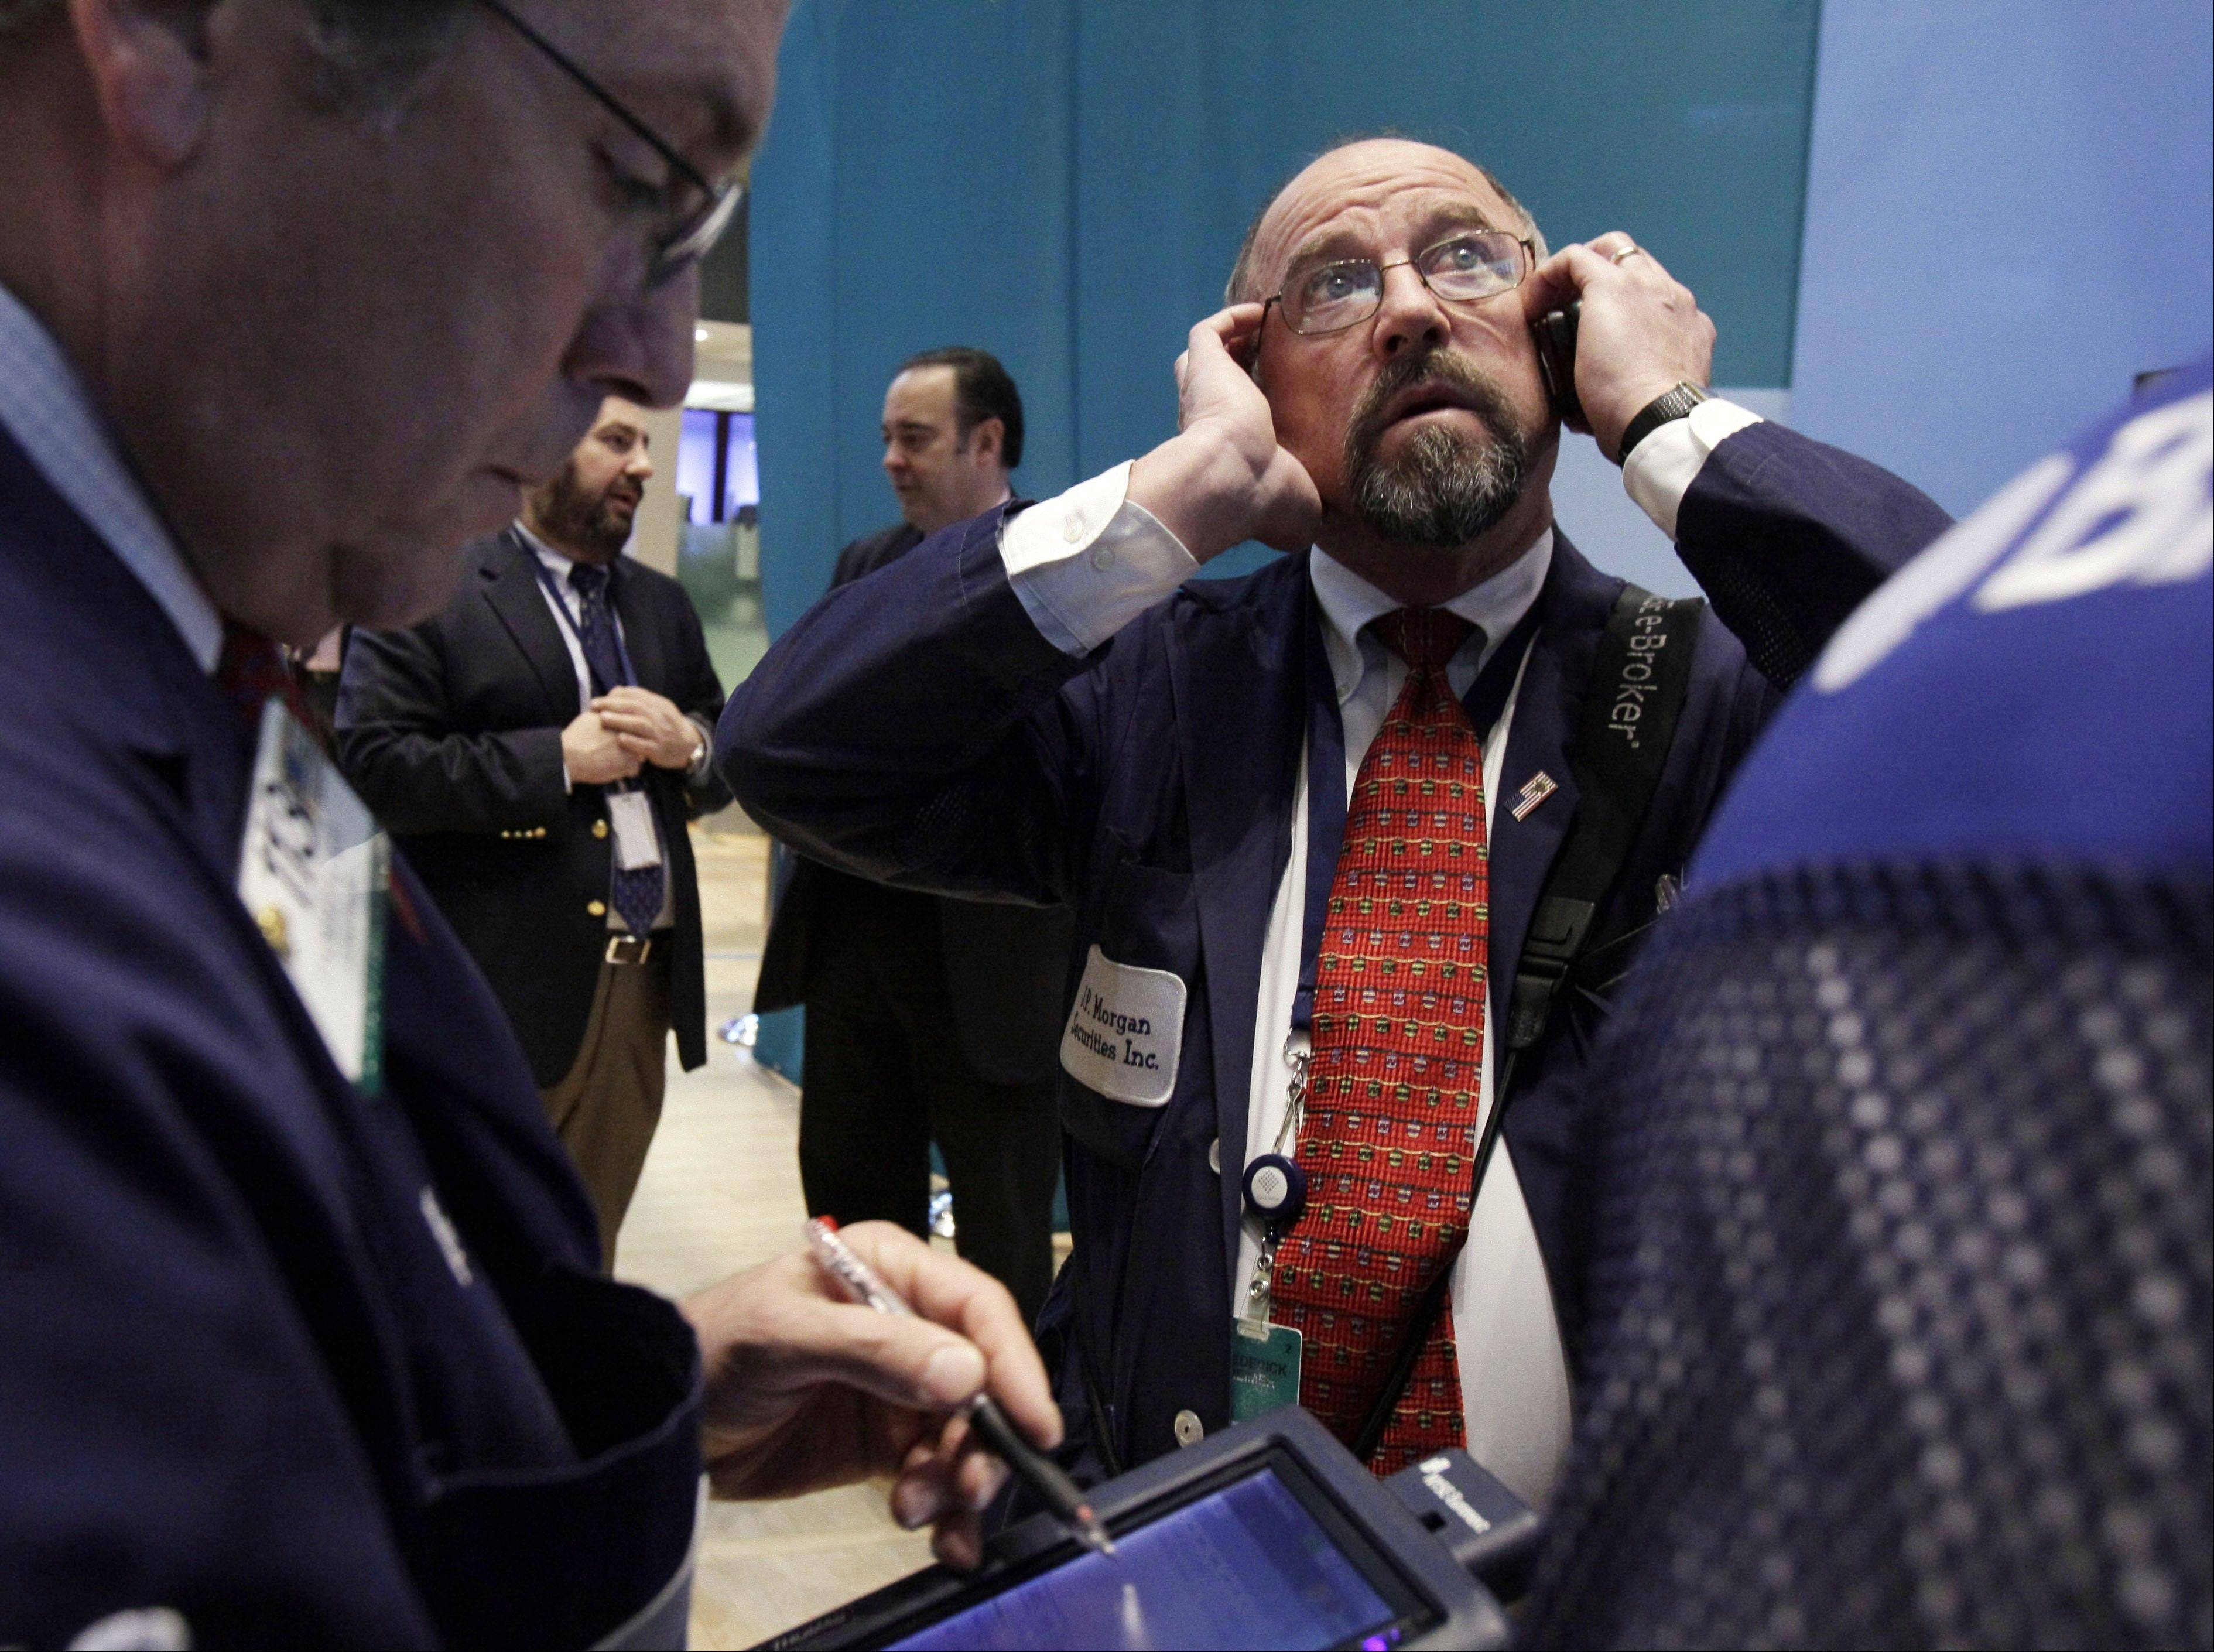 U.S. stocks retreated, snapping a six-day advance in the Standard & Poor's 500 Index, as the standoff in federal budget negotiations overshadowed a decline in jobless claims and a rebound in retail sales.